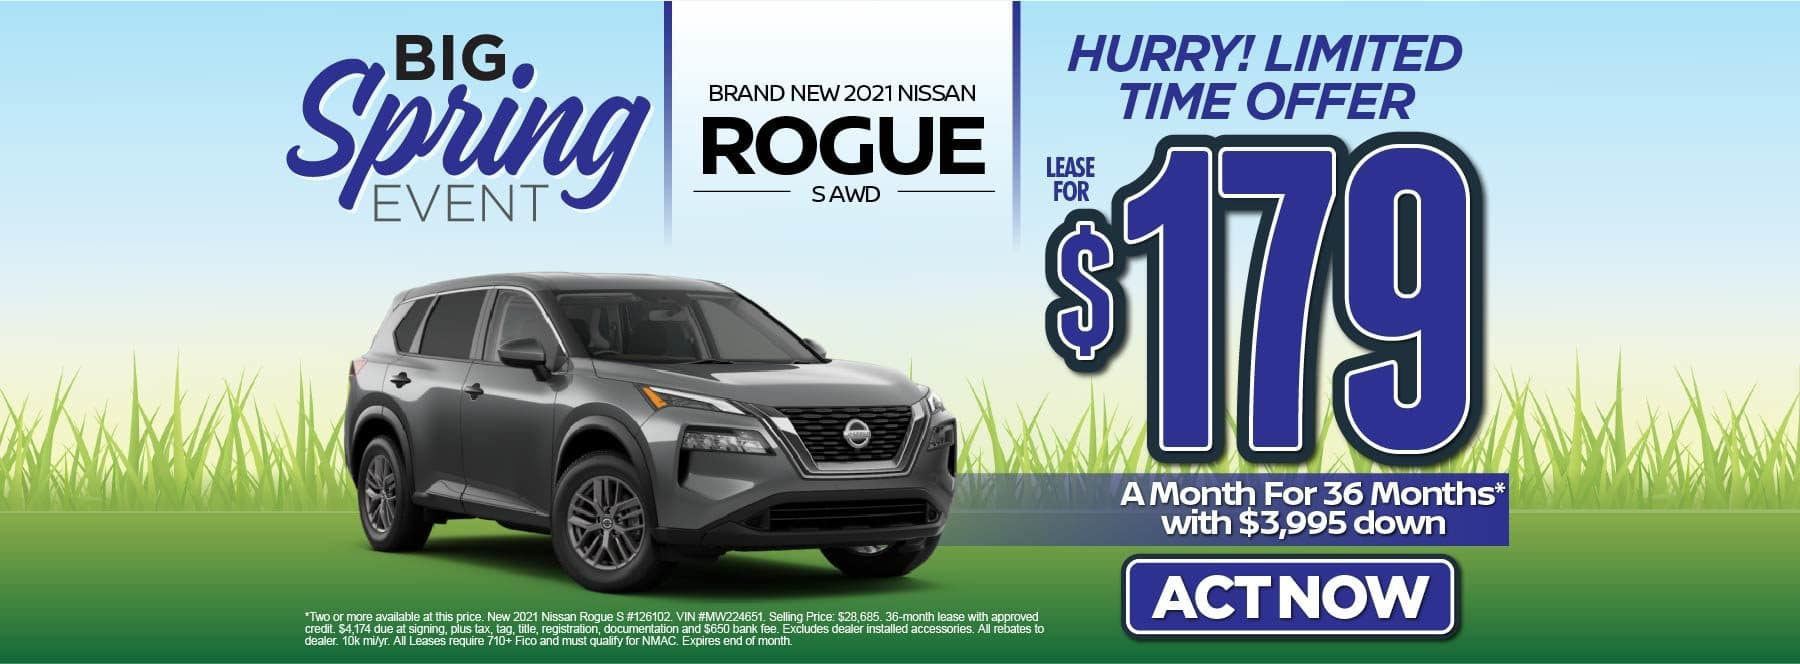 New 2021 Nissan Rogue S – Lease for $179/mo for 36 months with $3,995 Down* Act now.